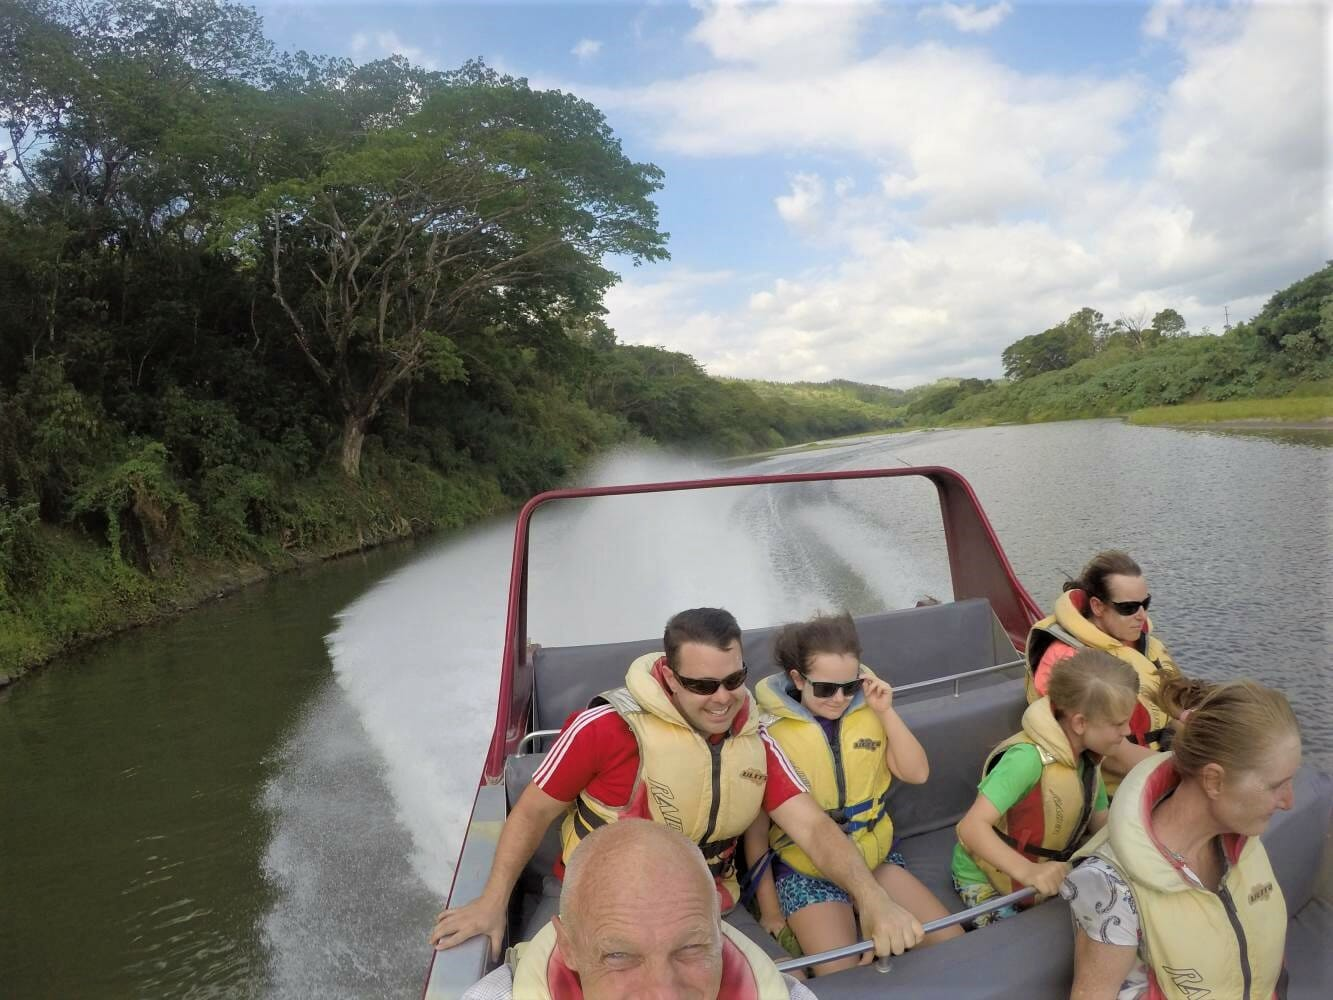 Sigatoka Jetboat ride with village tour and other things to do